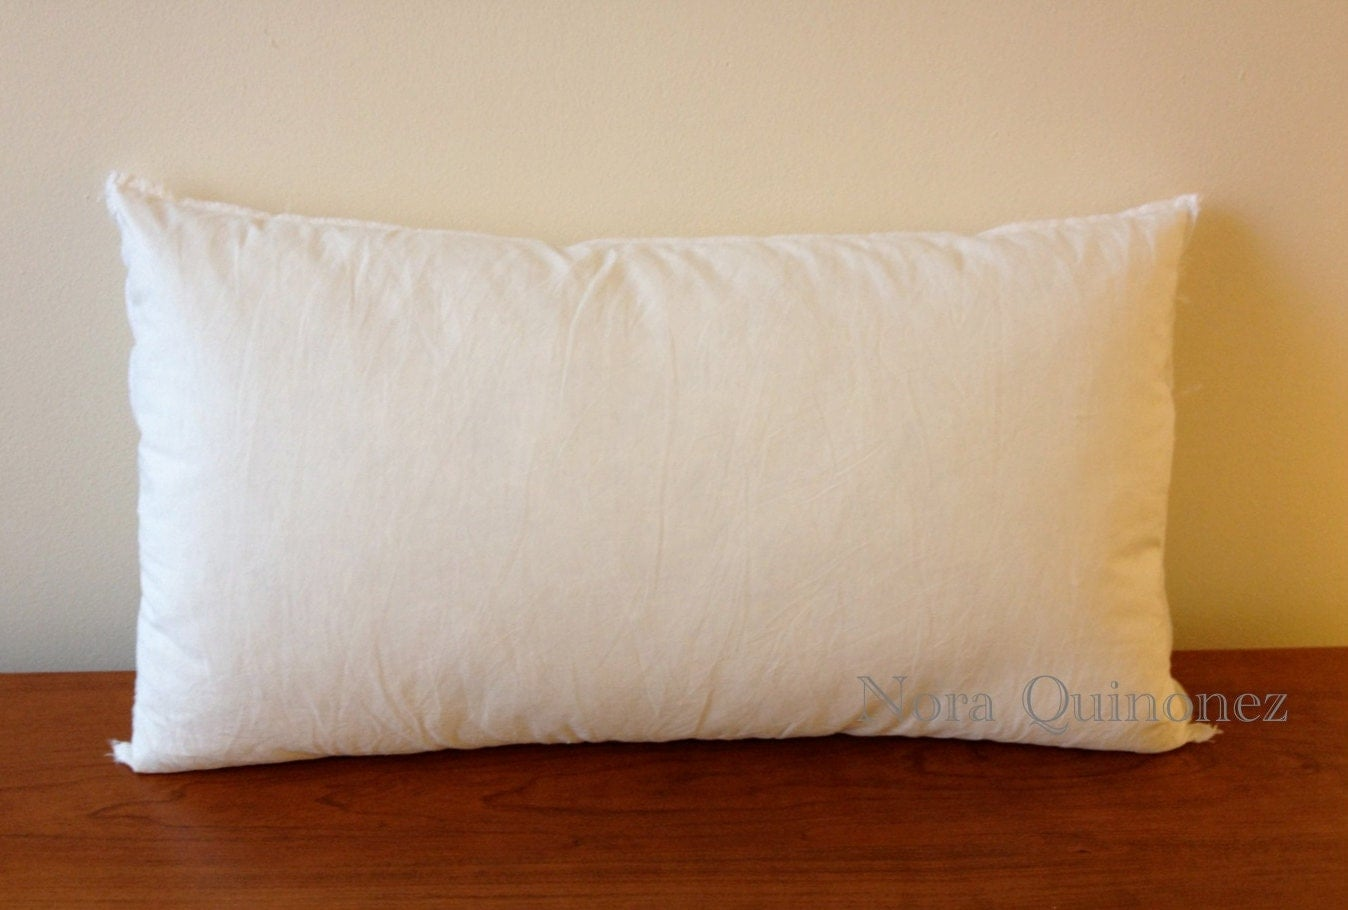 Decorative Pillow Forms : 10x20 TO 12x24 Pillow Inserts Form Made For Decorative Throw